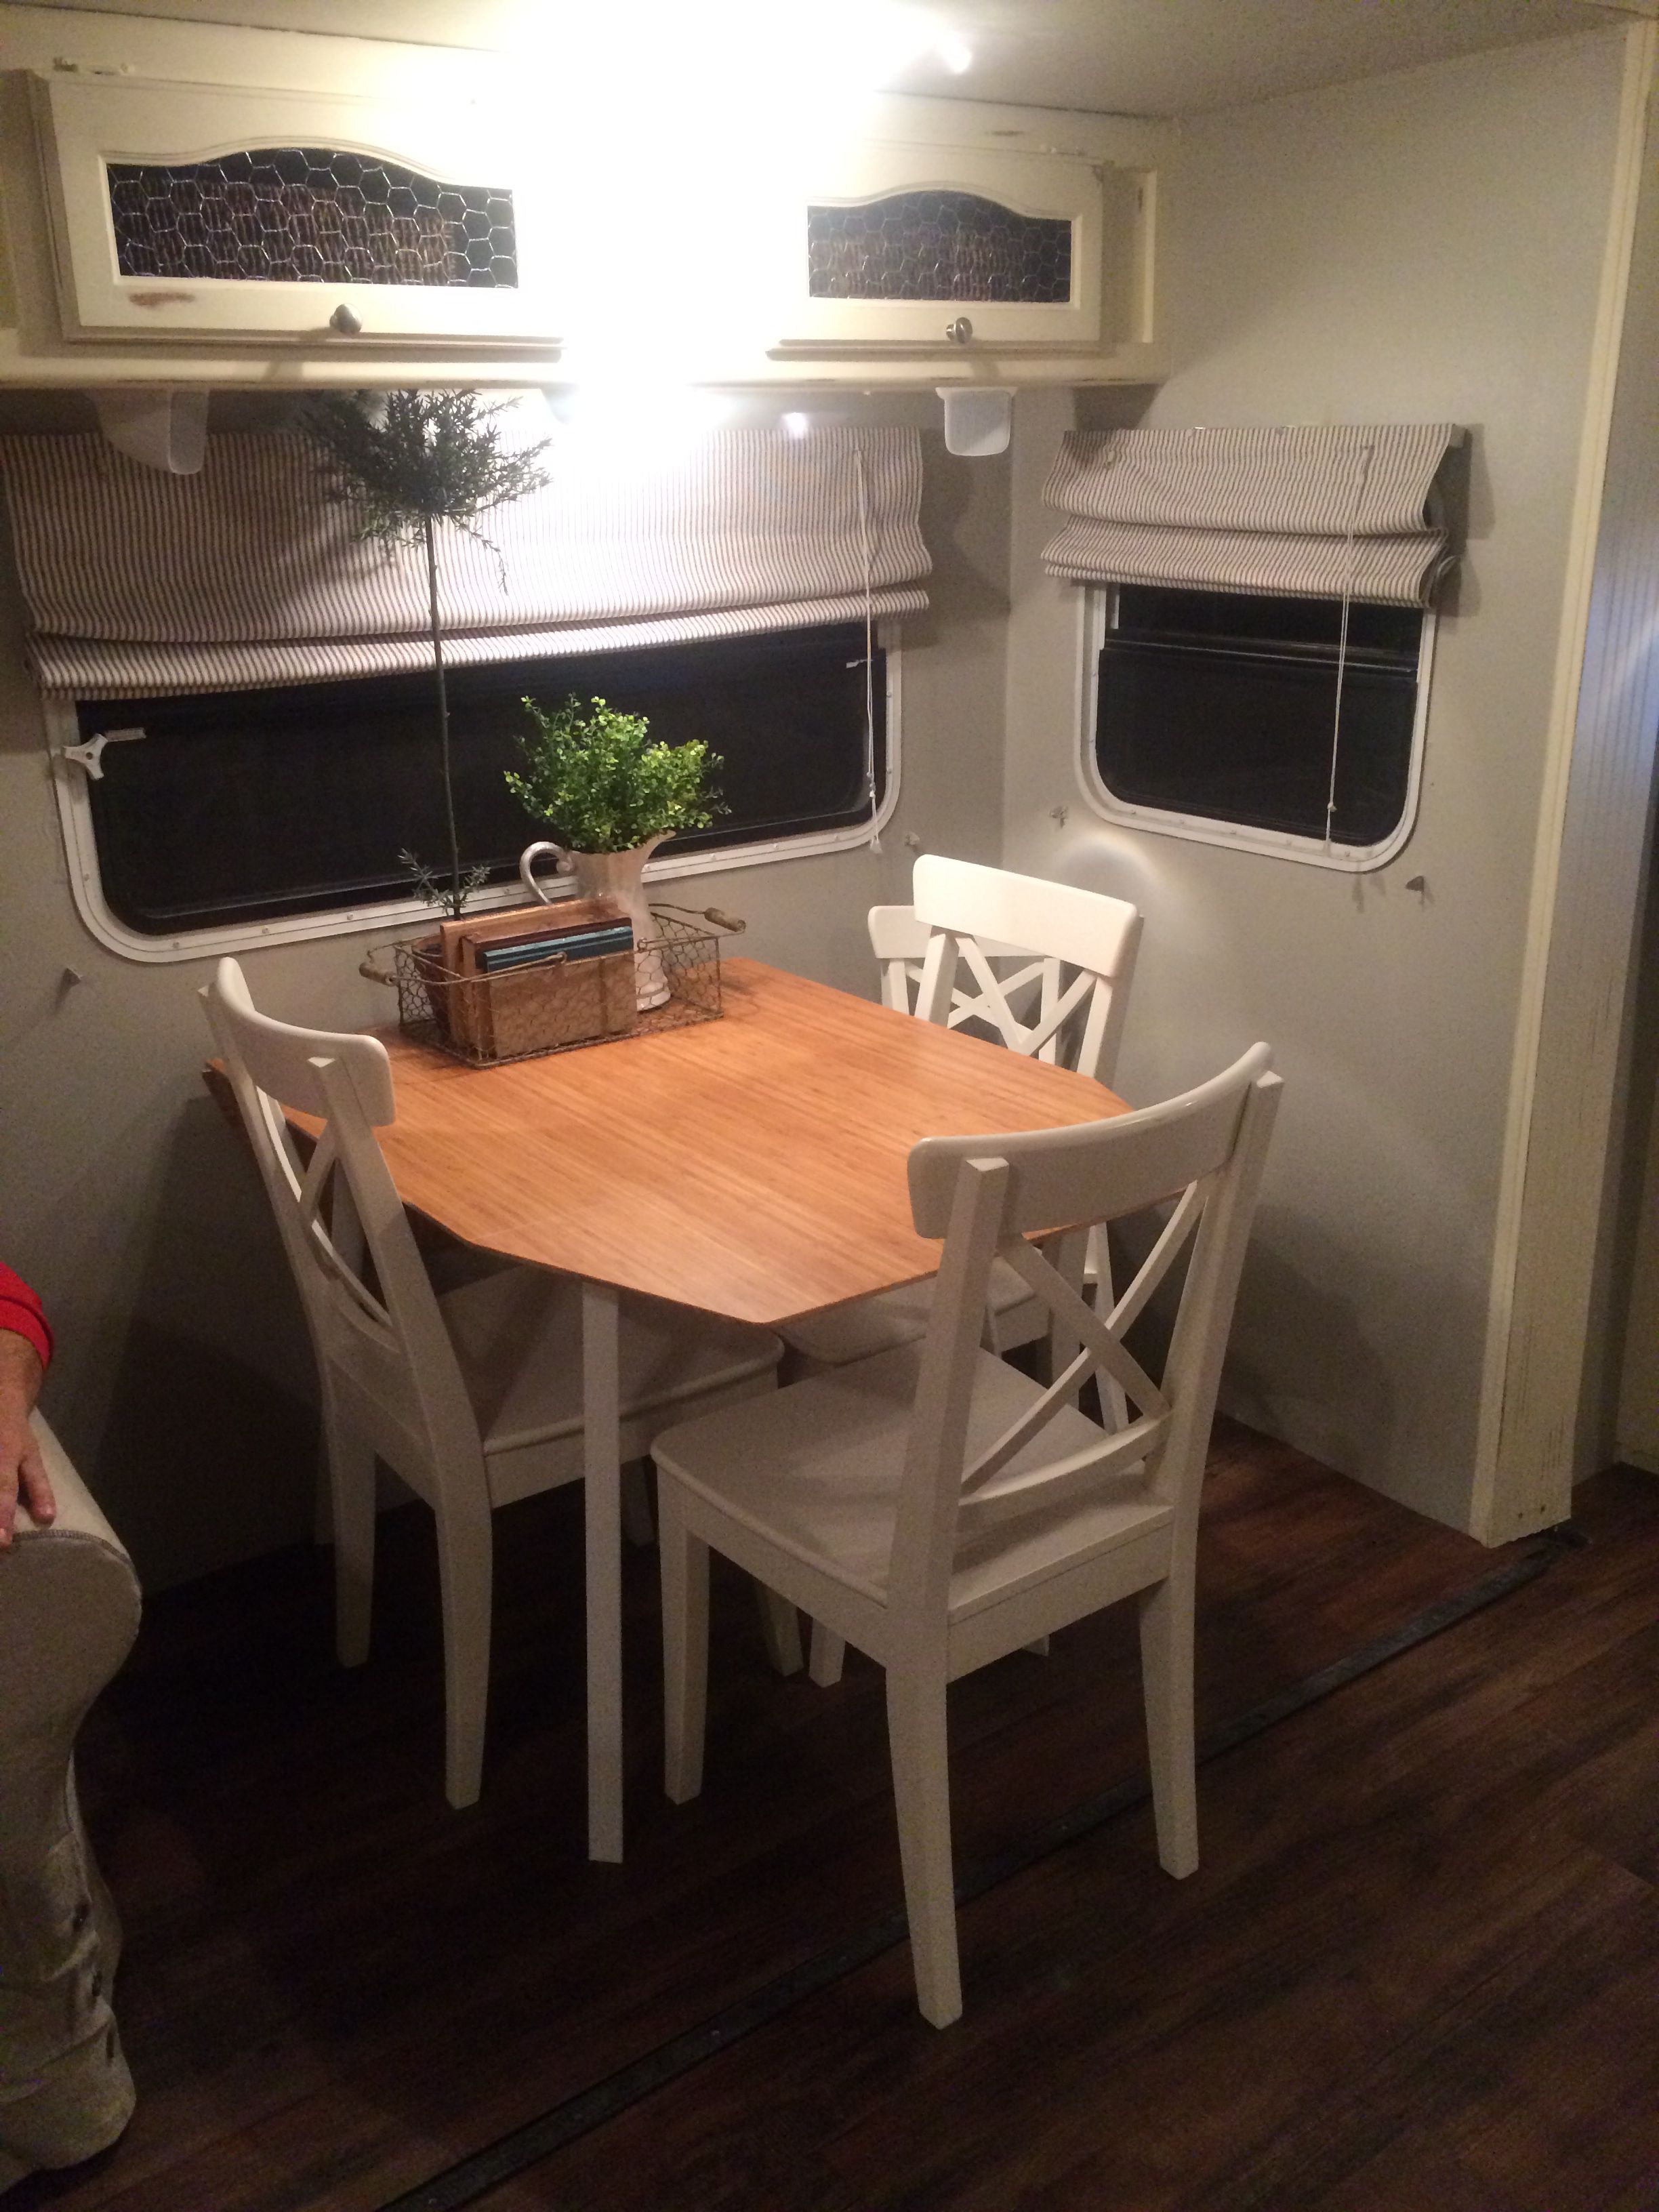 Dining Table Ikea With Toddler Chair Camper Renovation Finished Go Me It Turned Out Beautiful Mini Casas